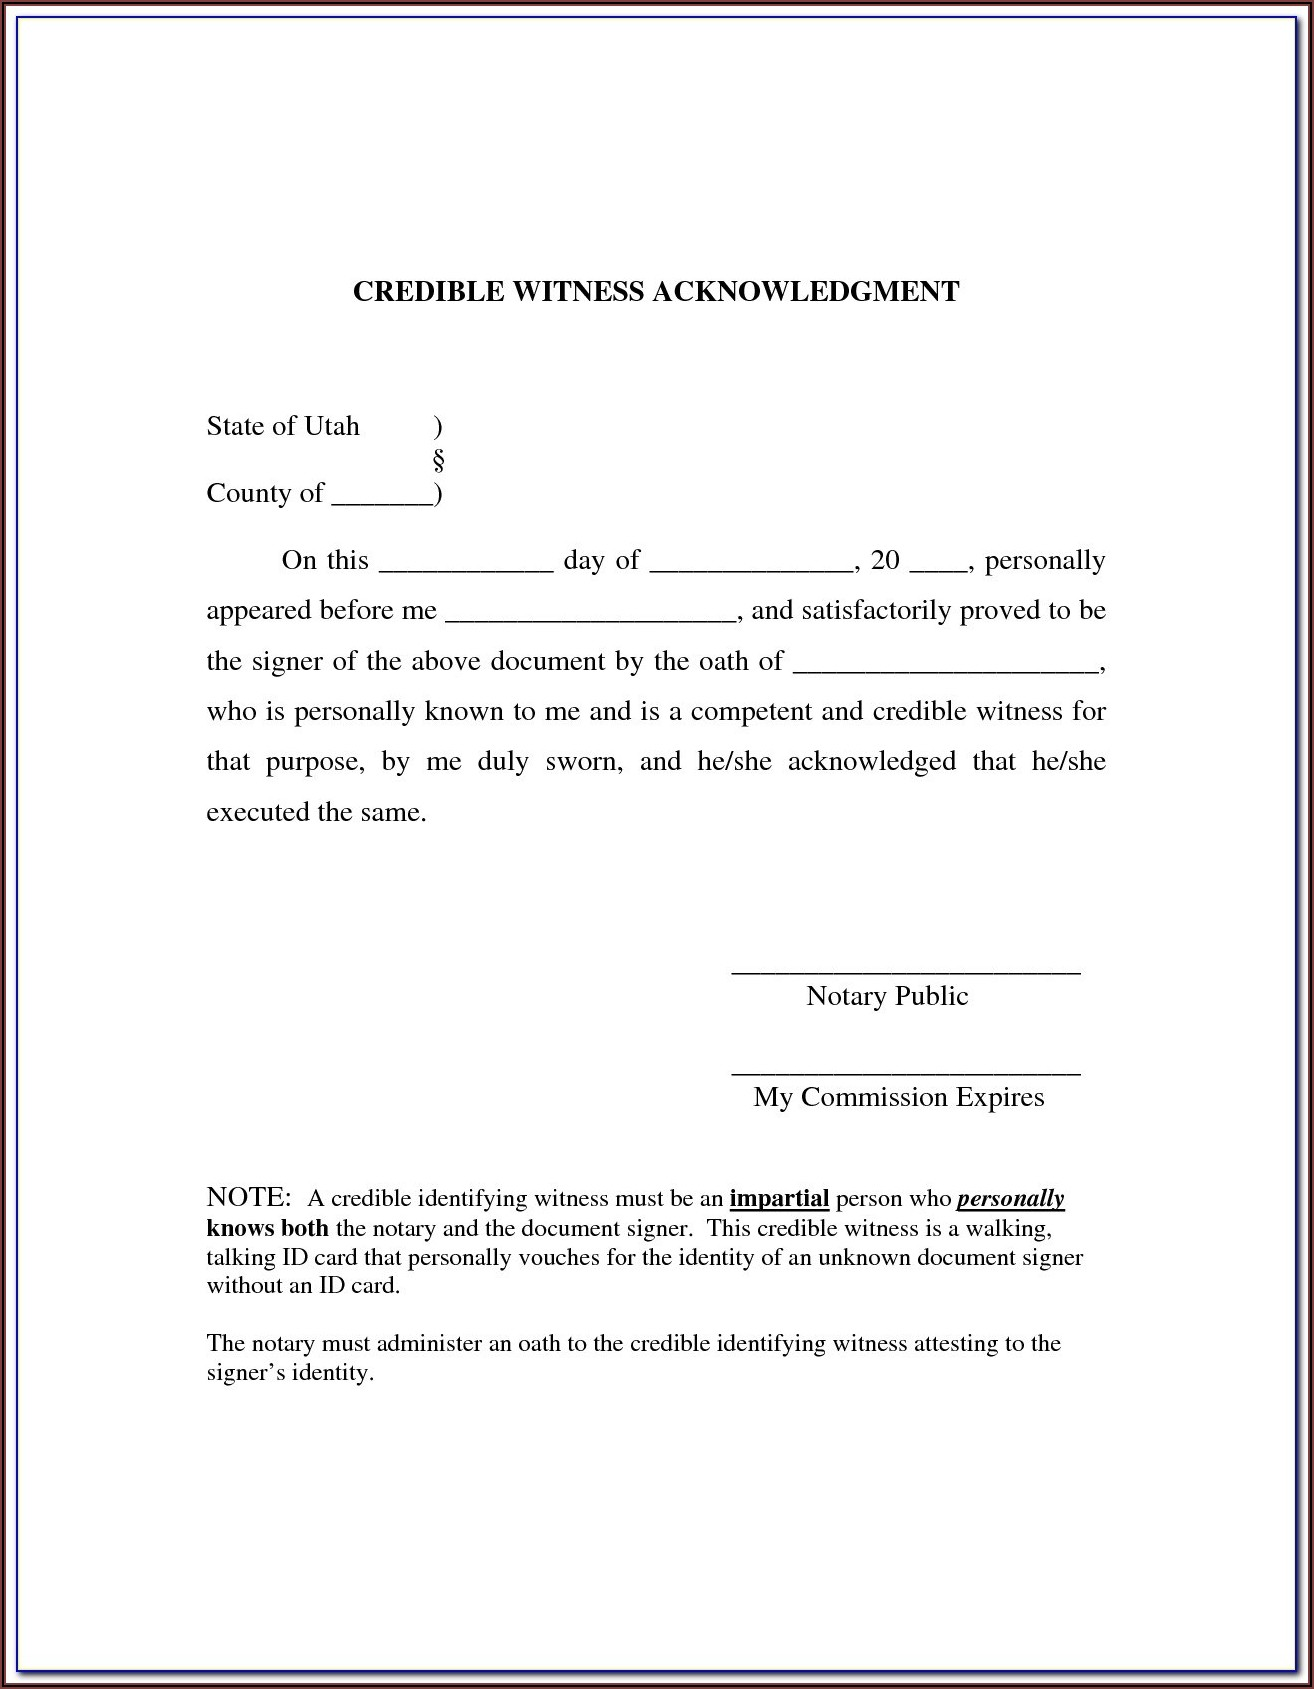 Texas Notary Certificate